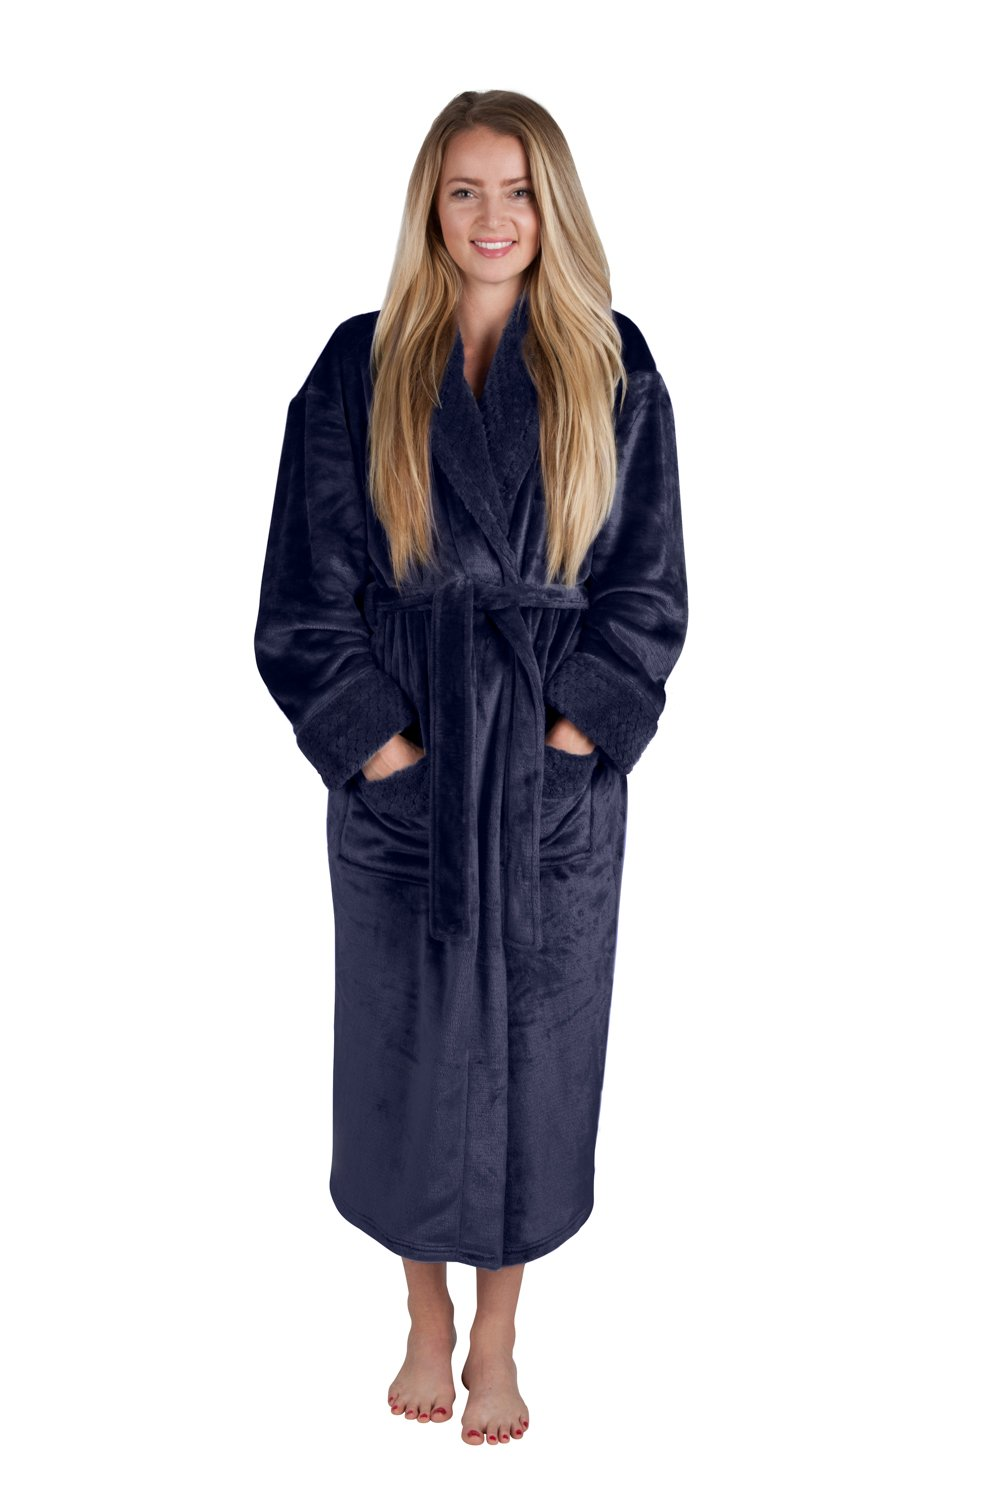 Women's 48'' Spa Style Full Length Robe with Velvet Collar & Cuffs Plus Sizes Avail. (X-Large, Indigo Blue) by Love This Robe